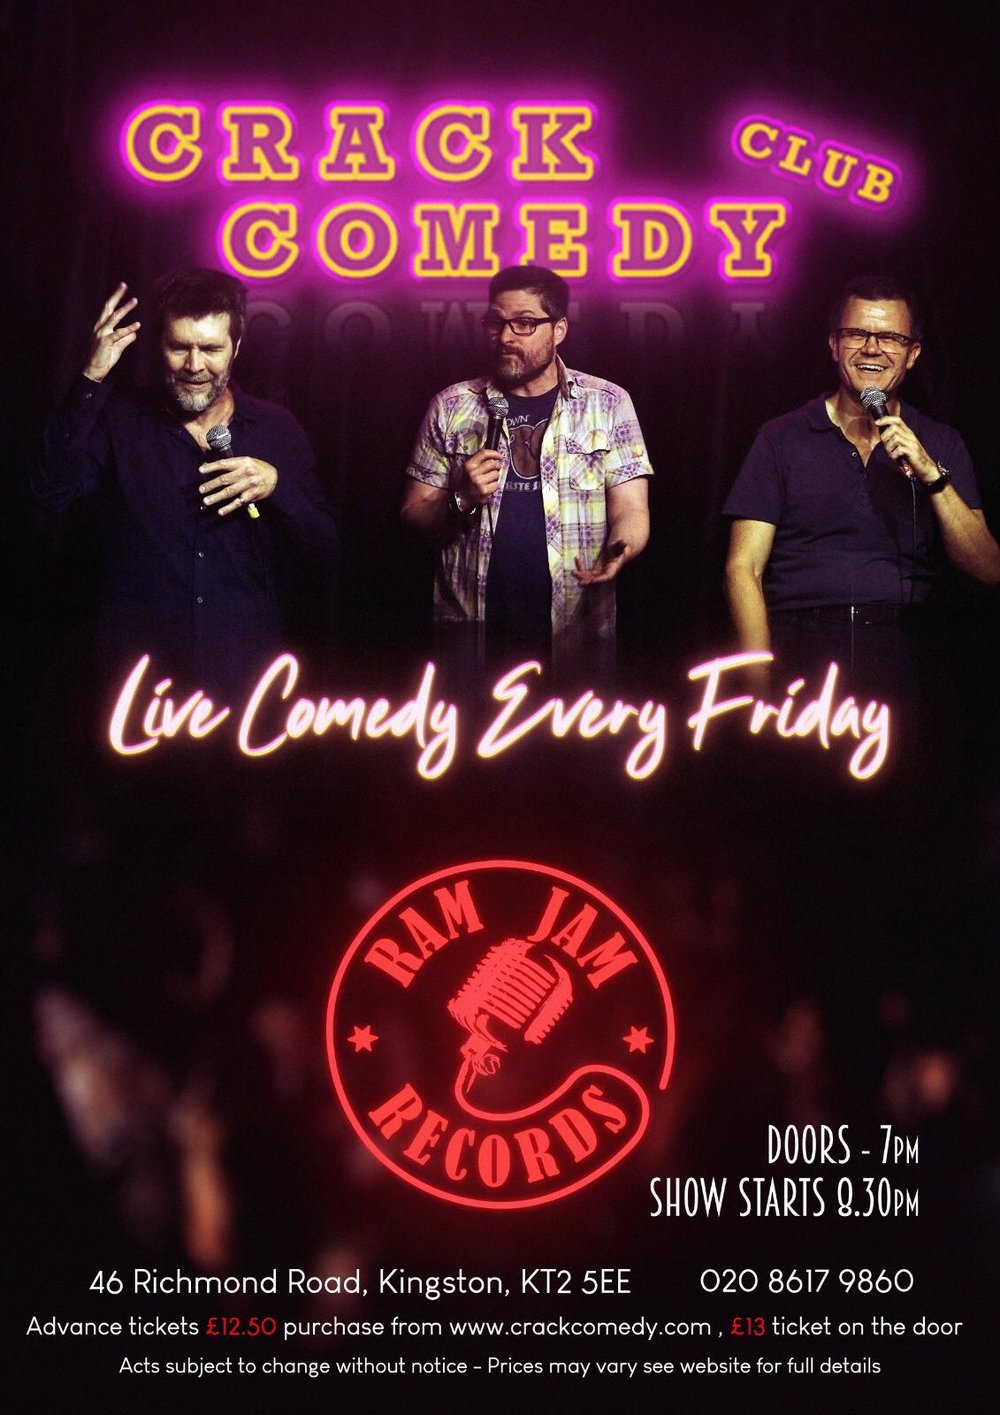 Every Friday Crack Comedy presents the best acts on the circuit. 8.30PM